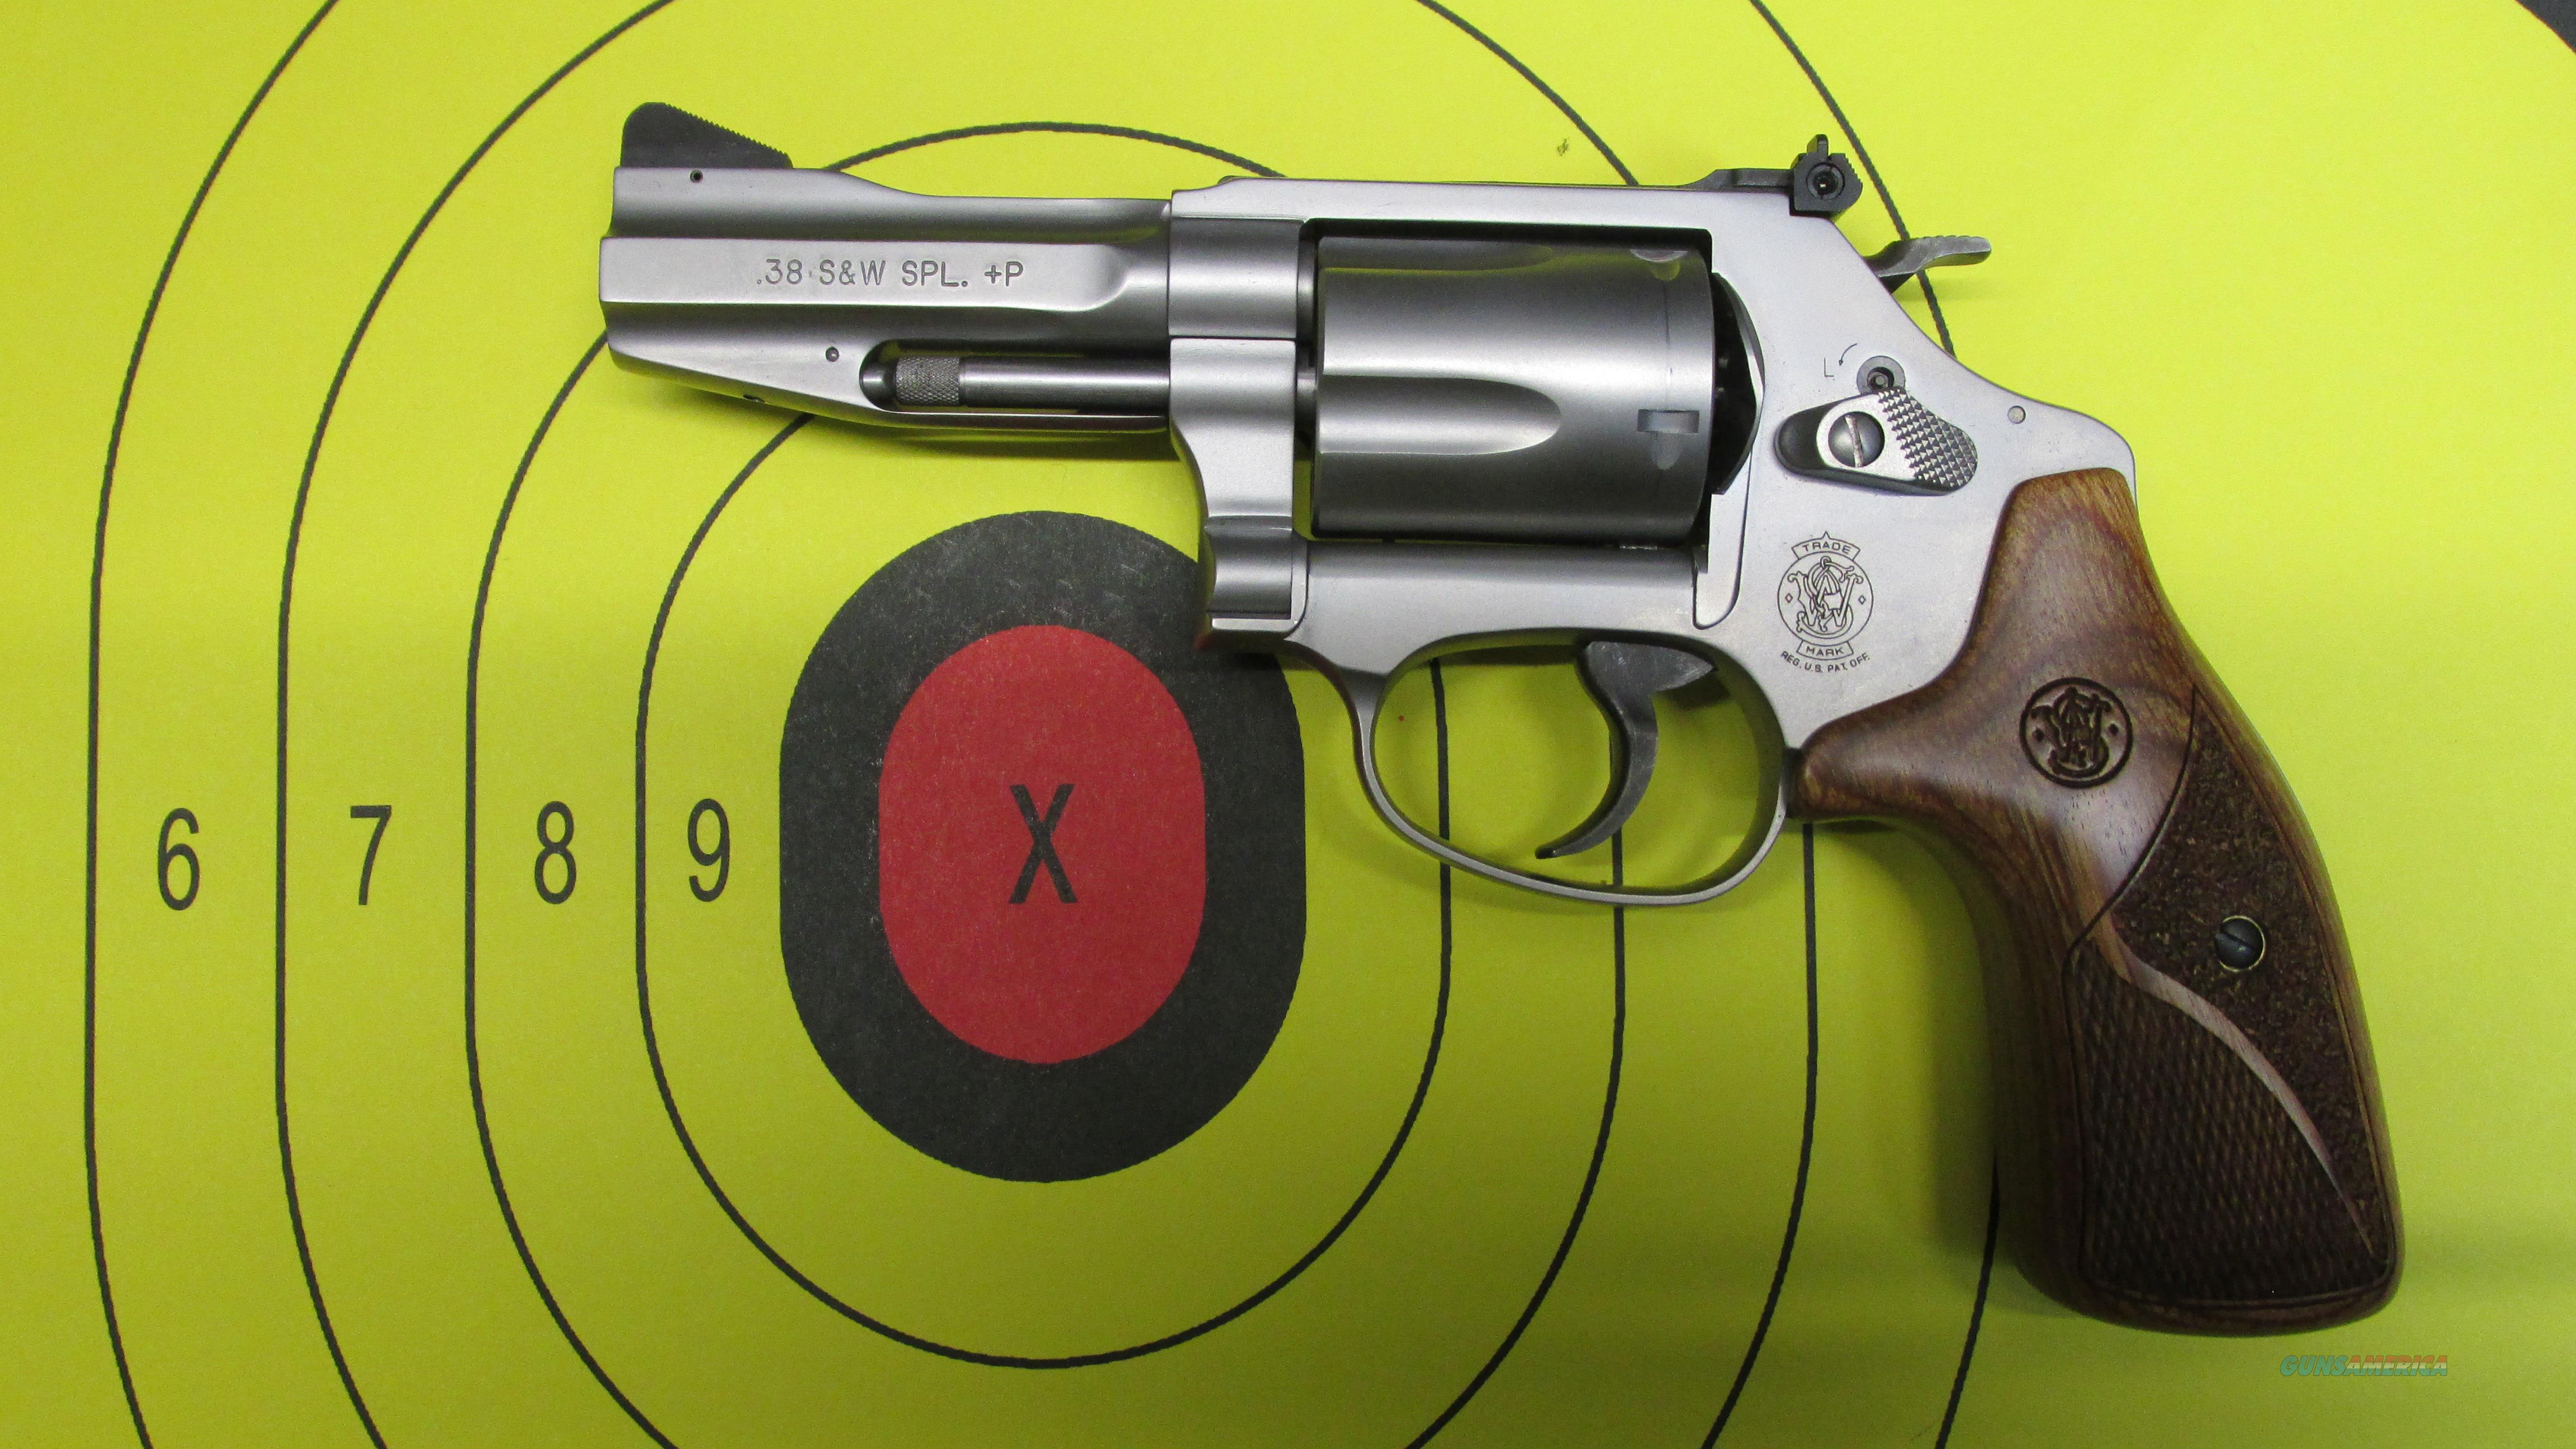 SMITH & WESSON 60-15 PRO SERIES .38 SPL 5 SHOT REVOLVER   Guns > Pistols > Smith & Wesson Revolvers > Performance Center